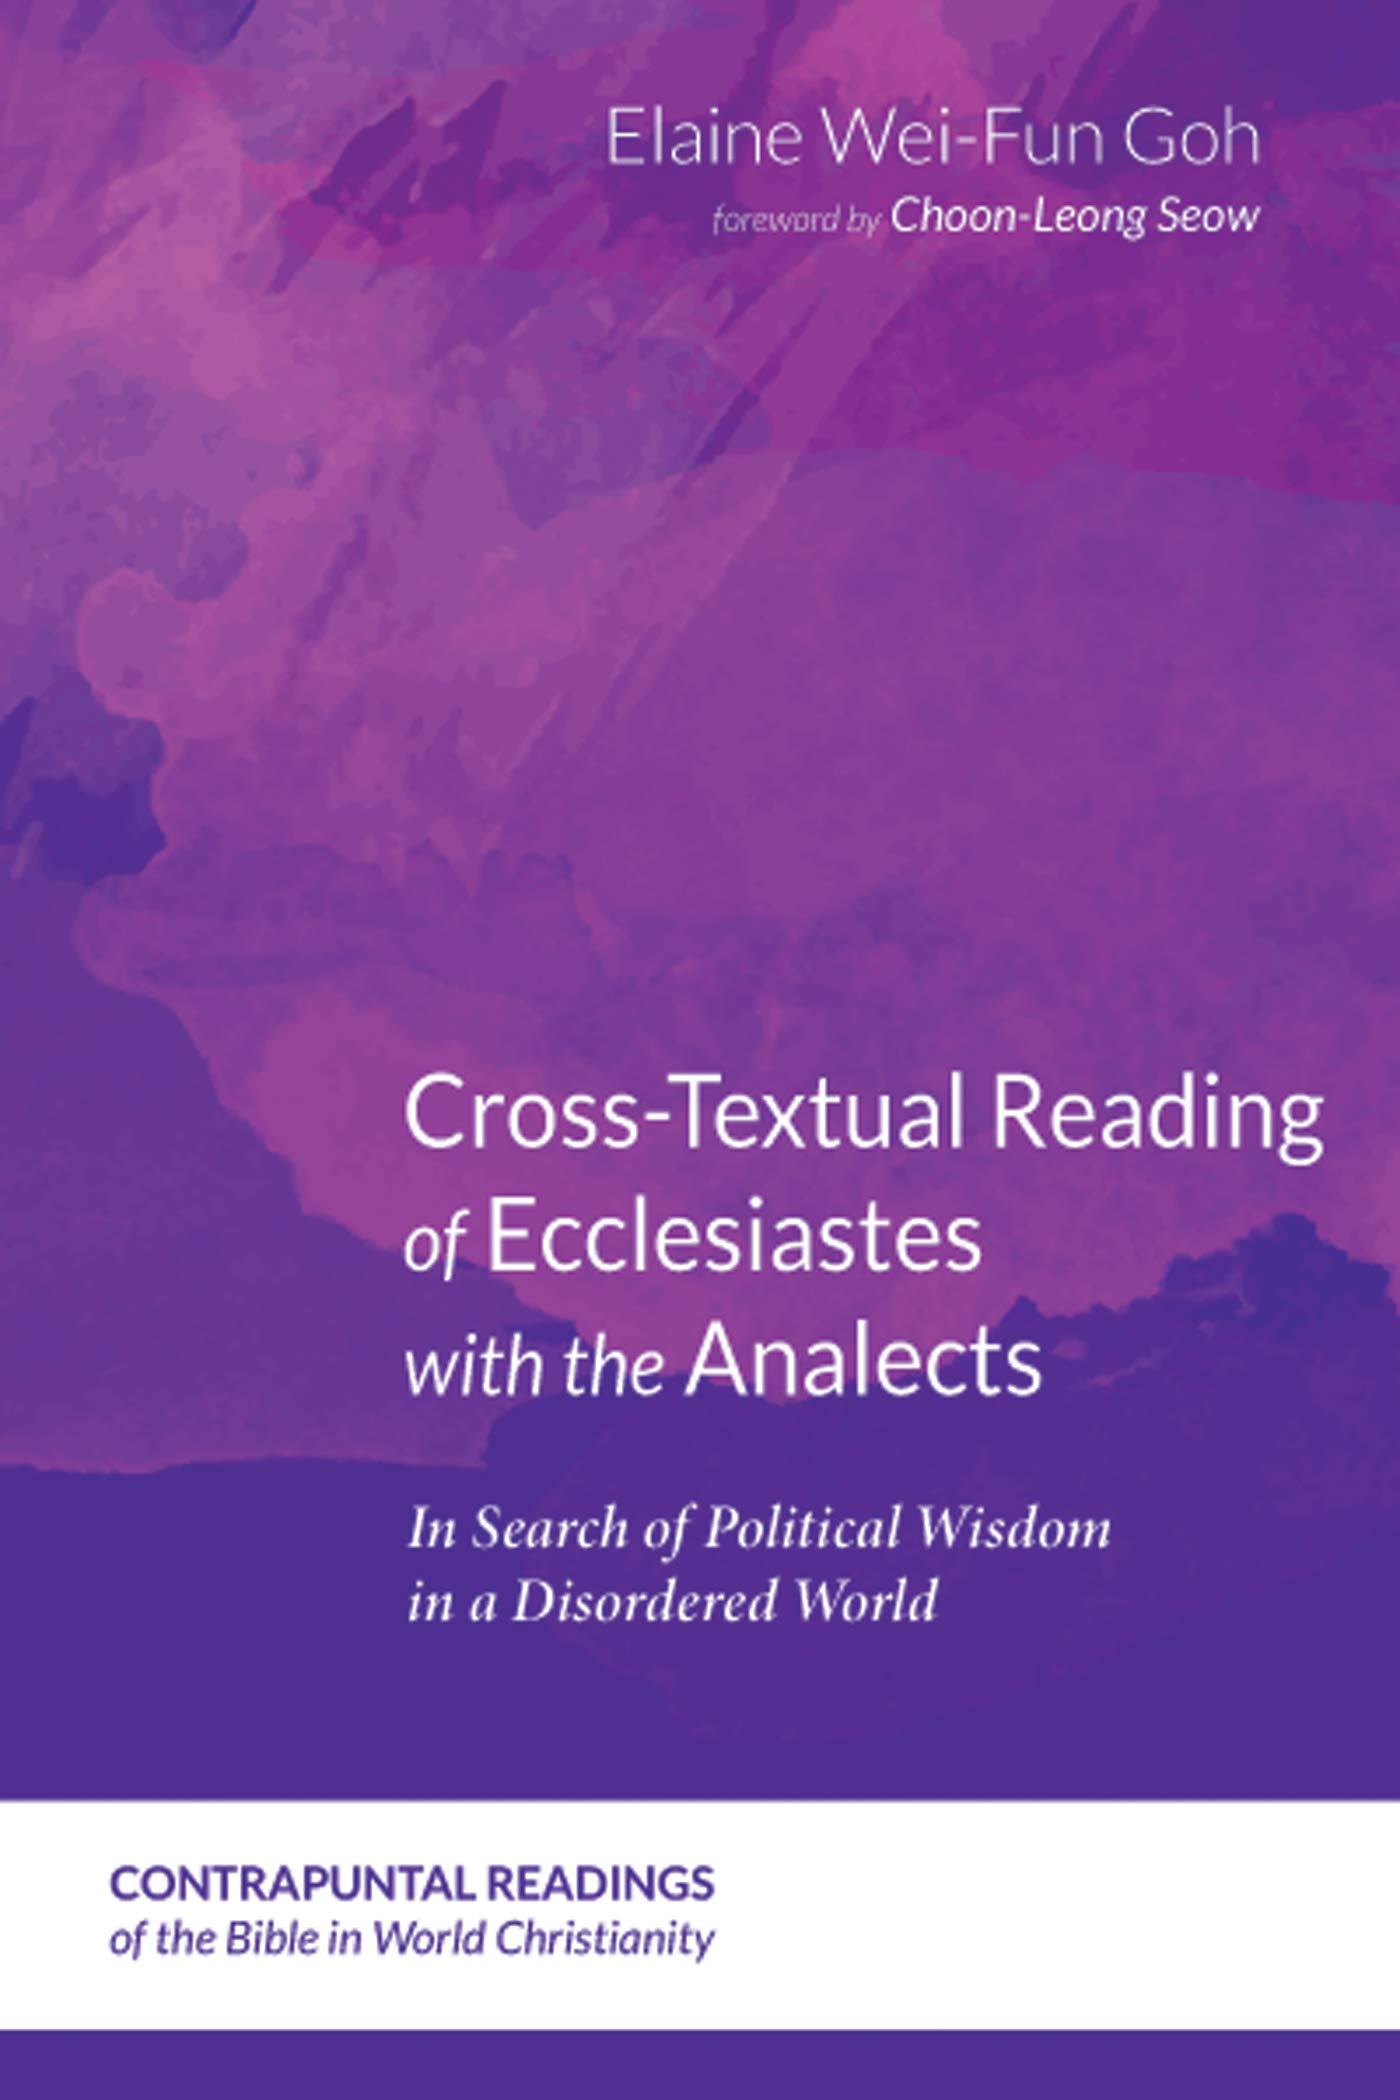 Cross-Textual Reading of Ecclesiastes with the Analects: In Search of Political Wisdom in a Disordered World (Contrapuntal Readings of the Bible in World Christianity Book 4)